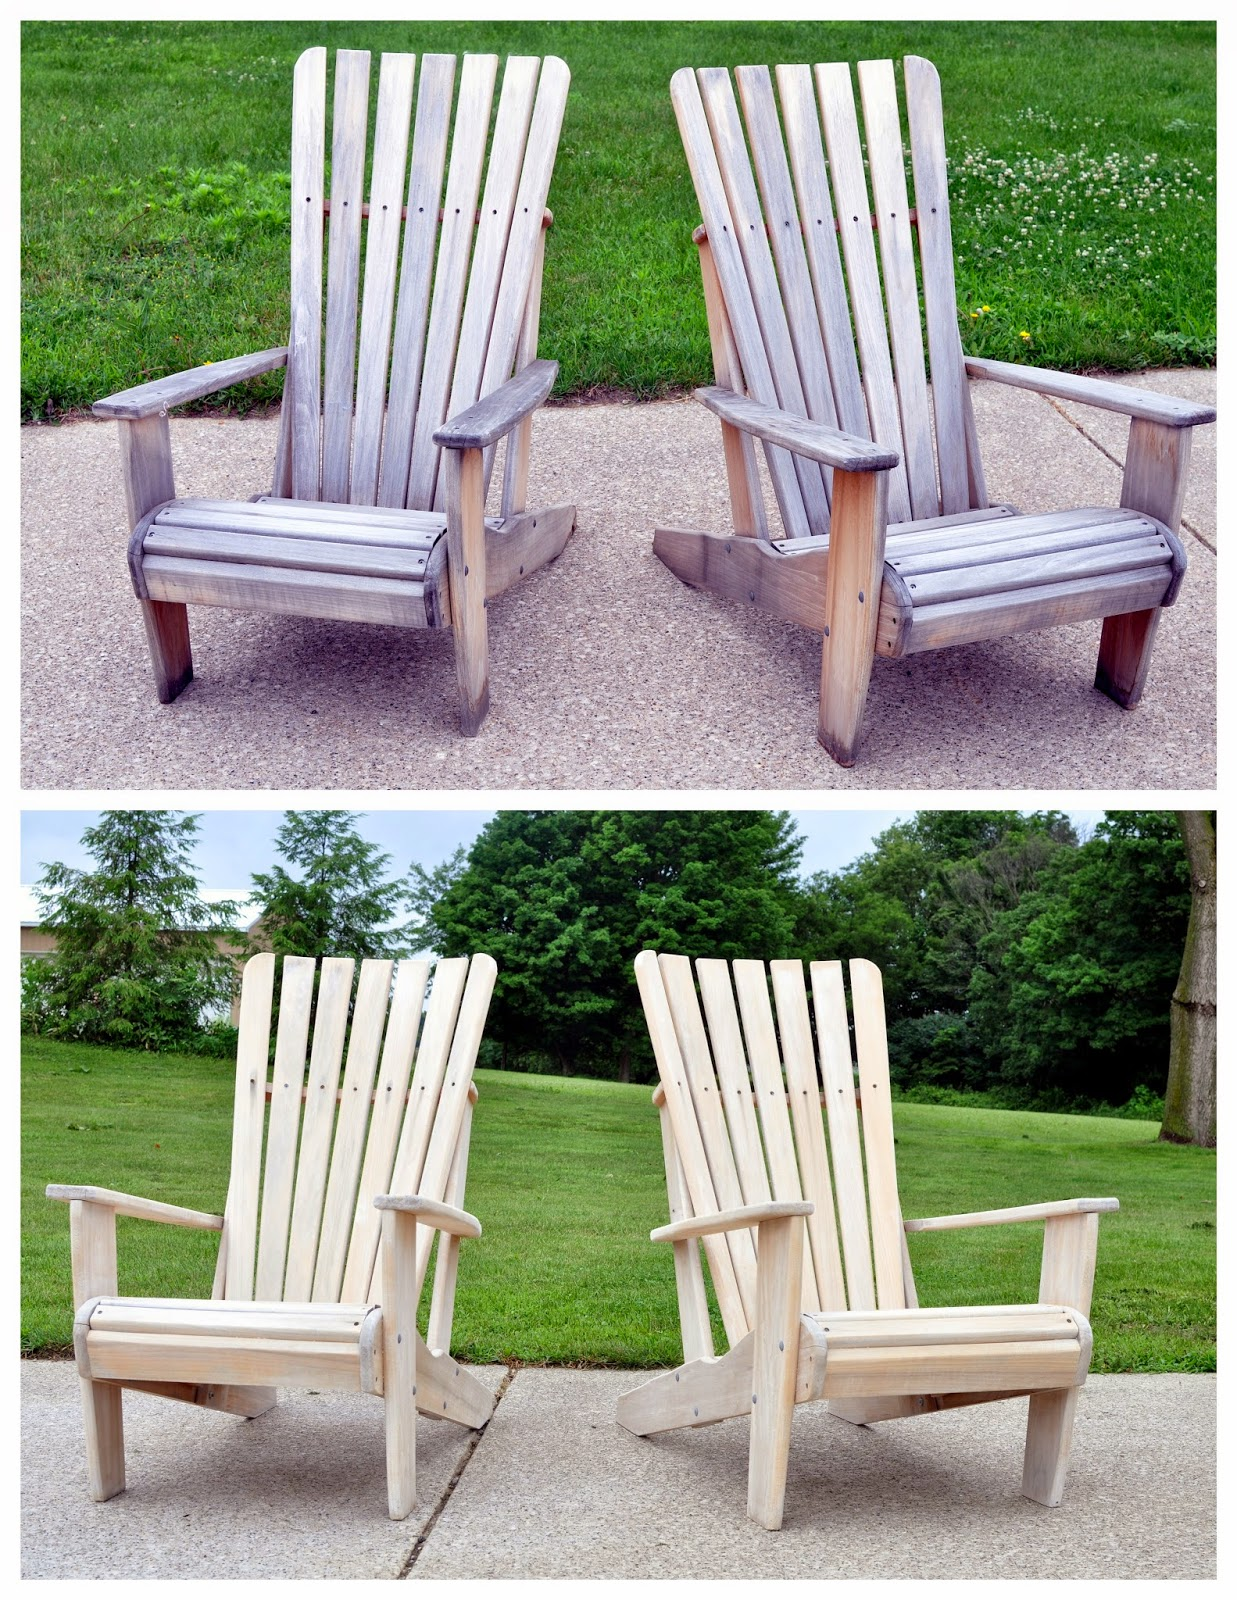 Weatherproof Adirondack Chairs A Nurse And A Nerd Weather Proofing The Adirondacks